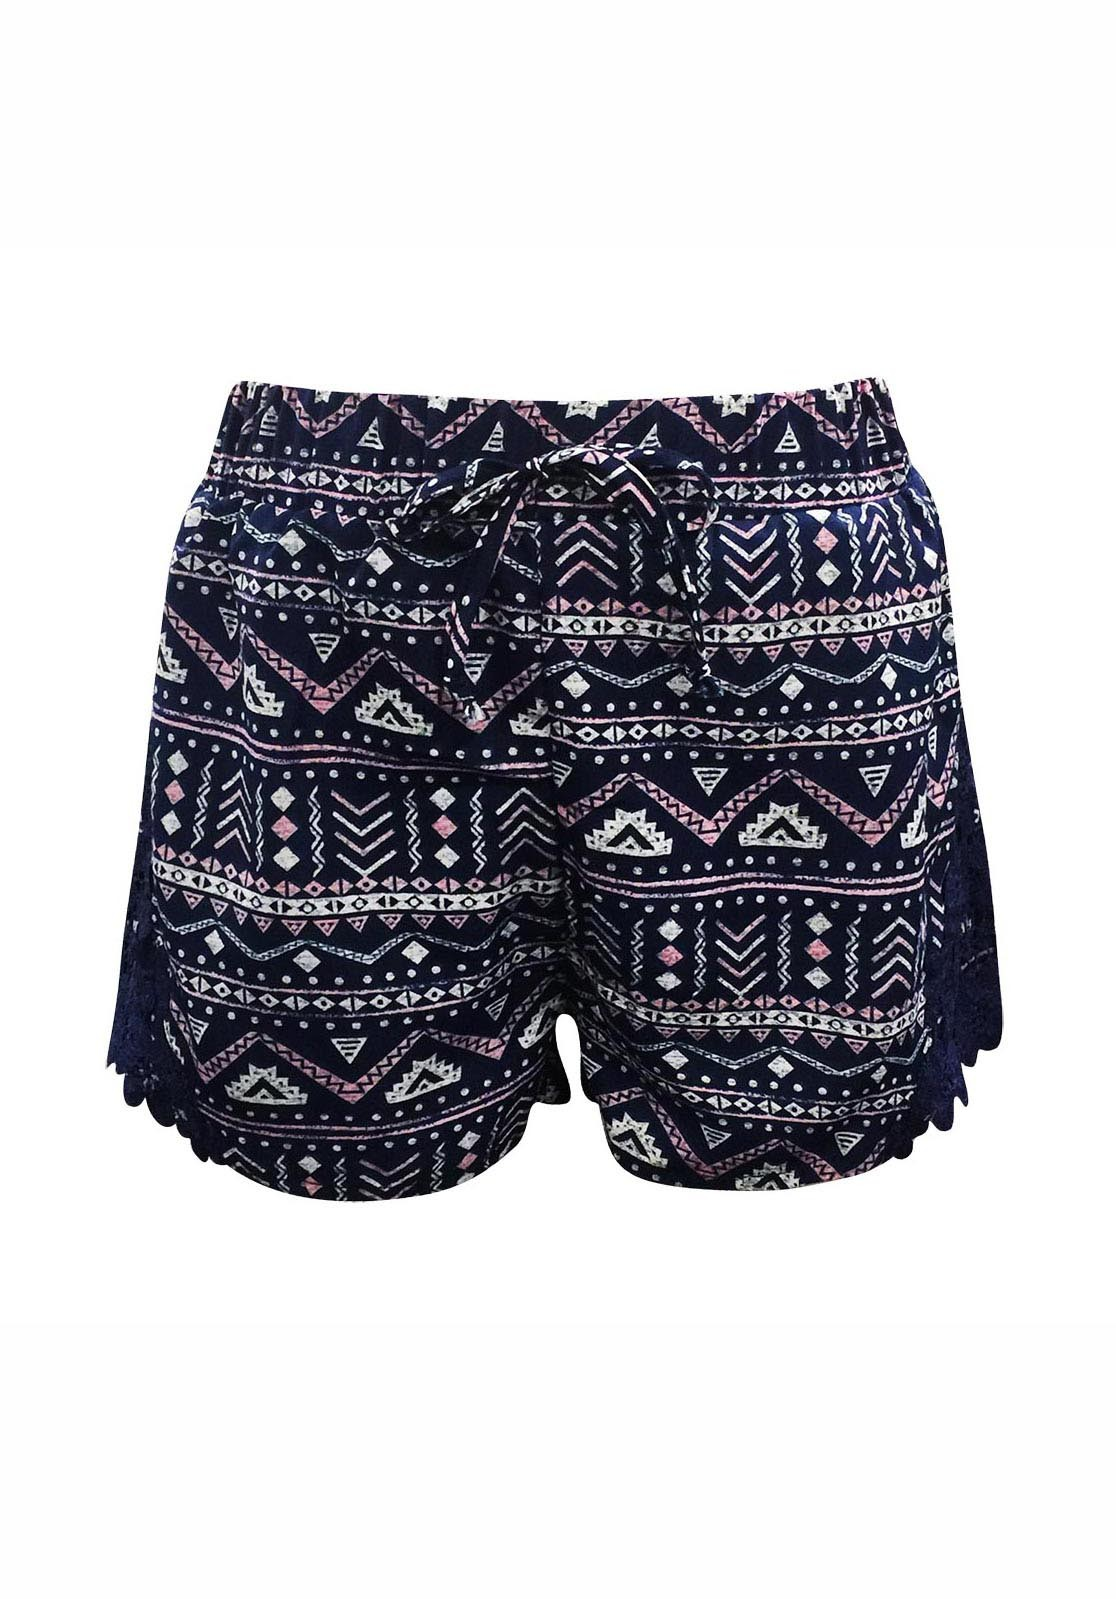 KIDS NAVY/PINK/WHT TRIBAL PRINT SHORTS W/ NVY LACE APPLIQUE(7/8,10/12)#XK7SH16-08